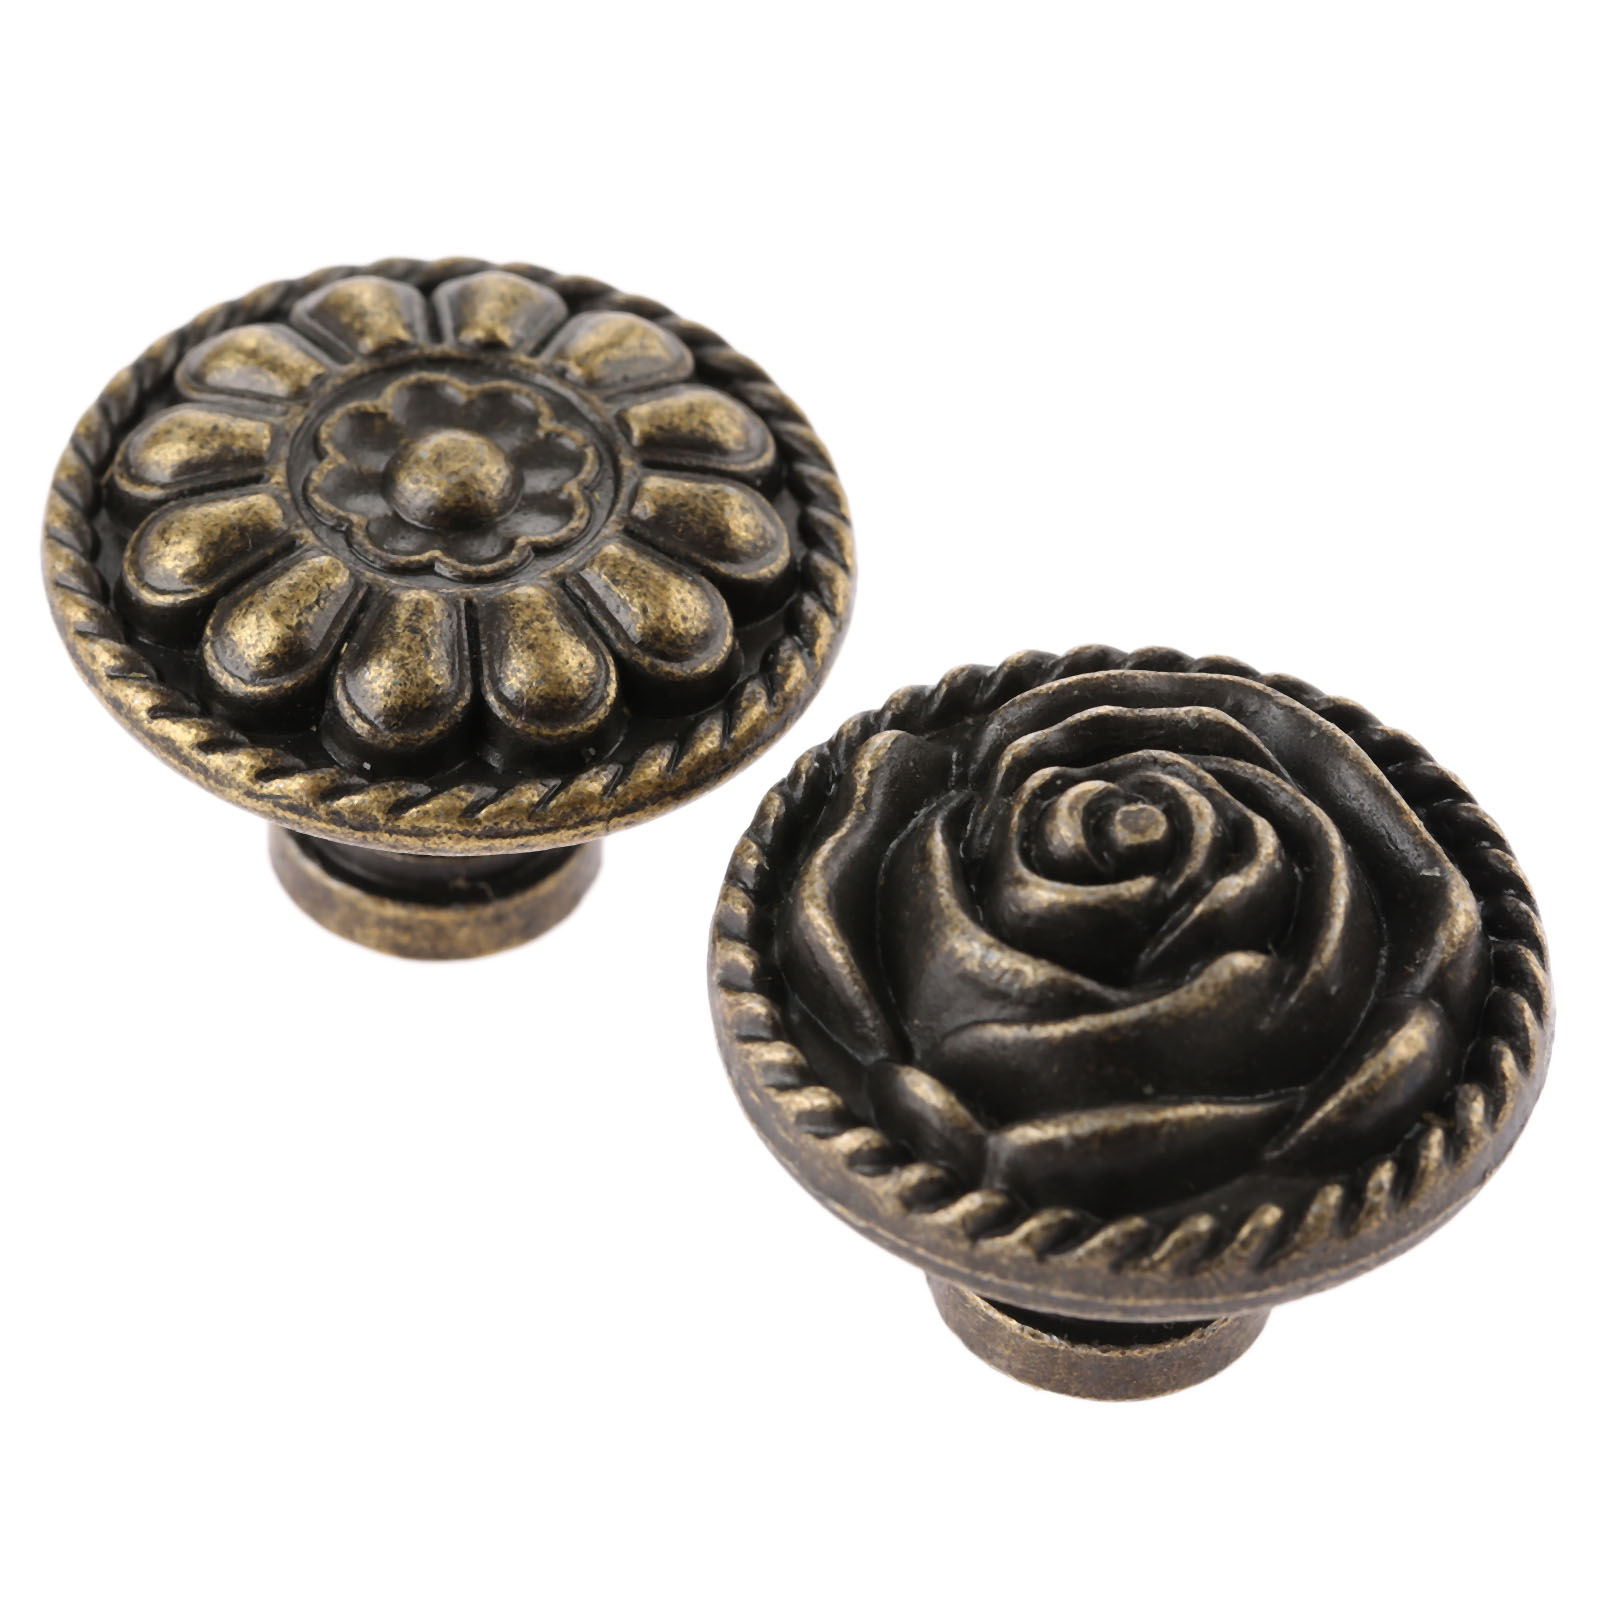 1Pc Antique Metal Round Drawer Knob Vintage Bronze Handle Cabinet Drawer Door Cupboard Pull Knob for Kitchen Bathroom Home in Cabinet Pulls from Home Improvement